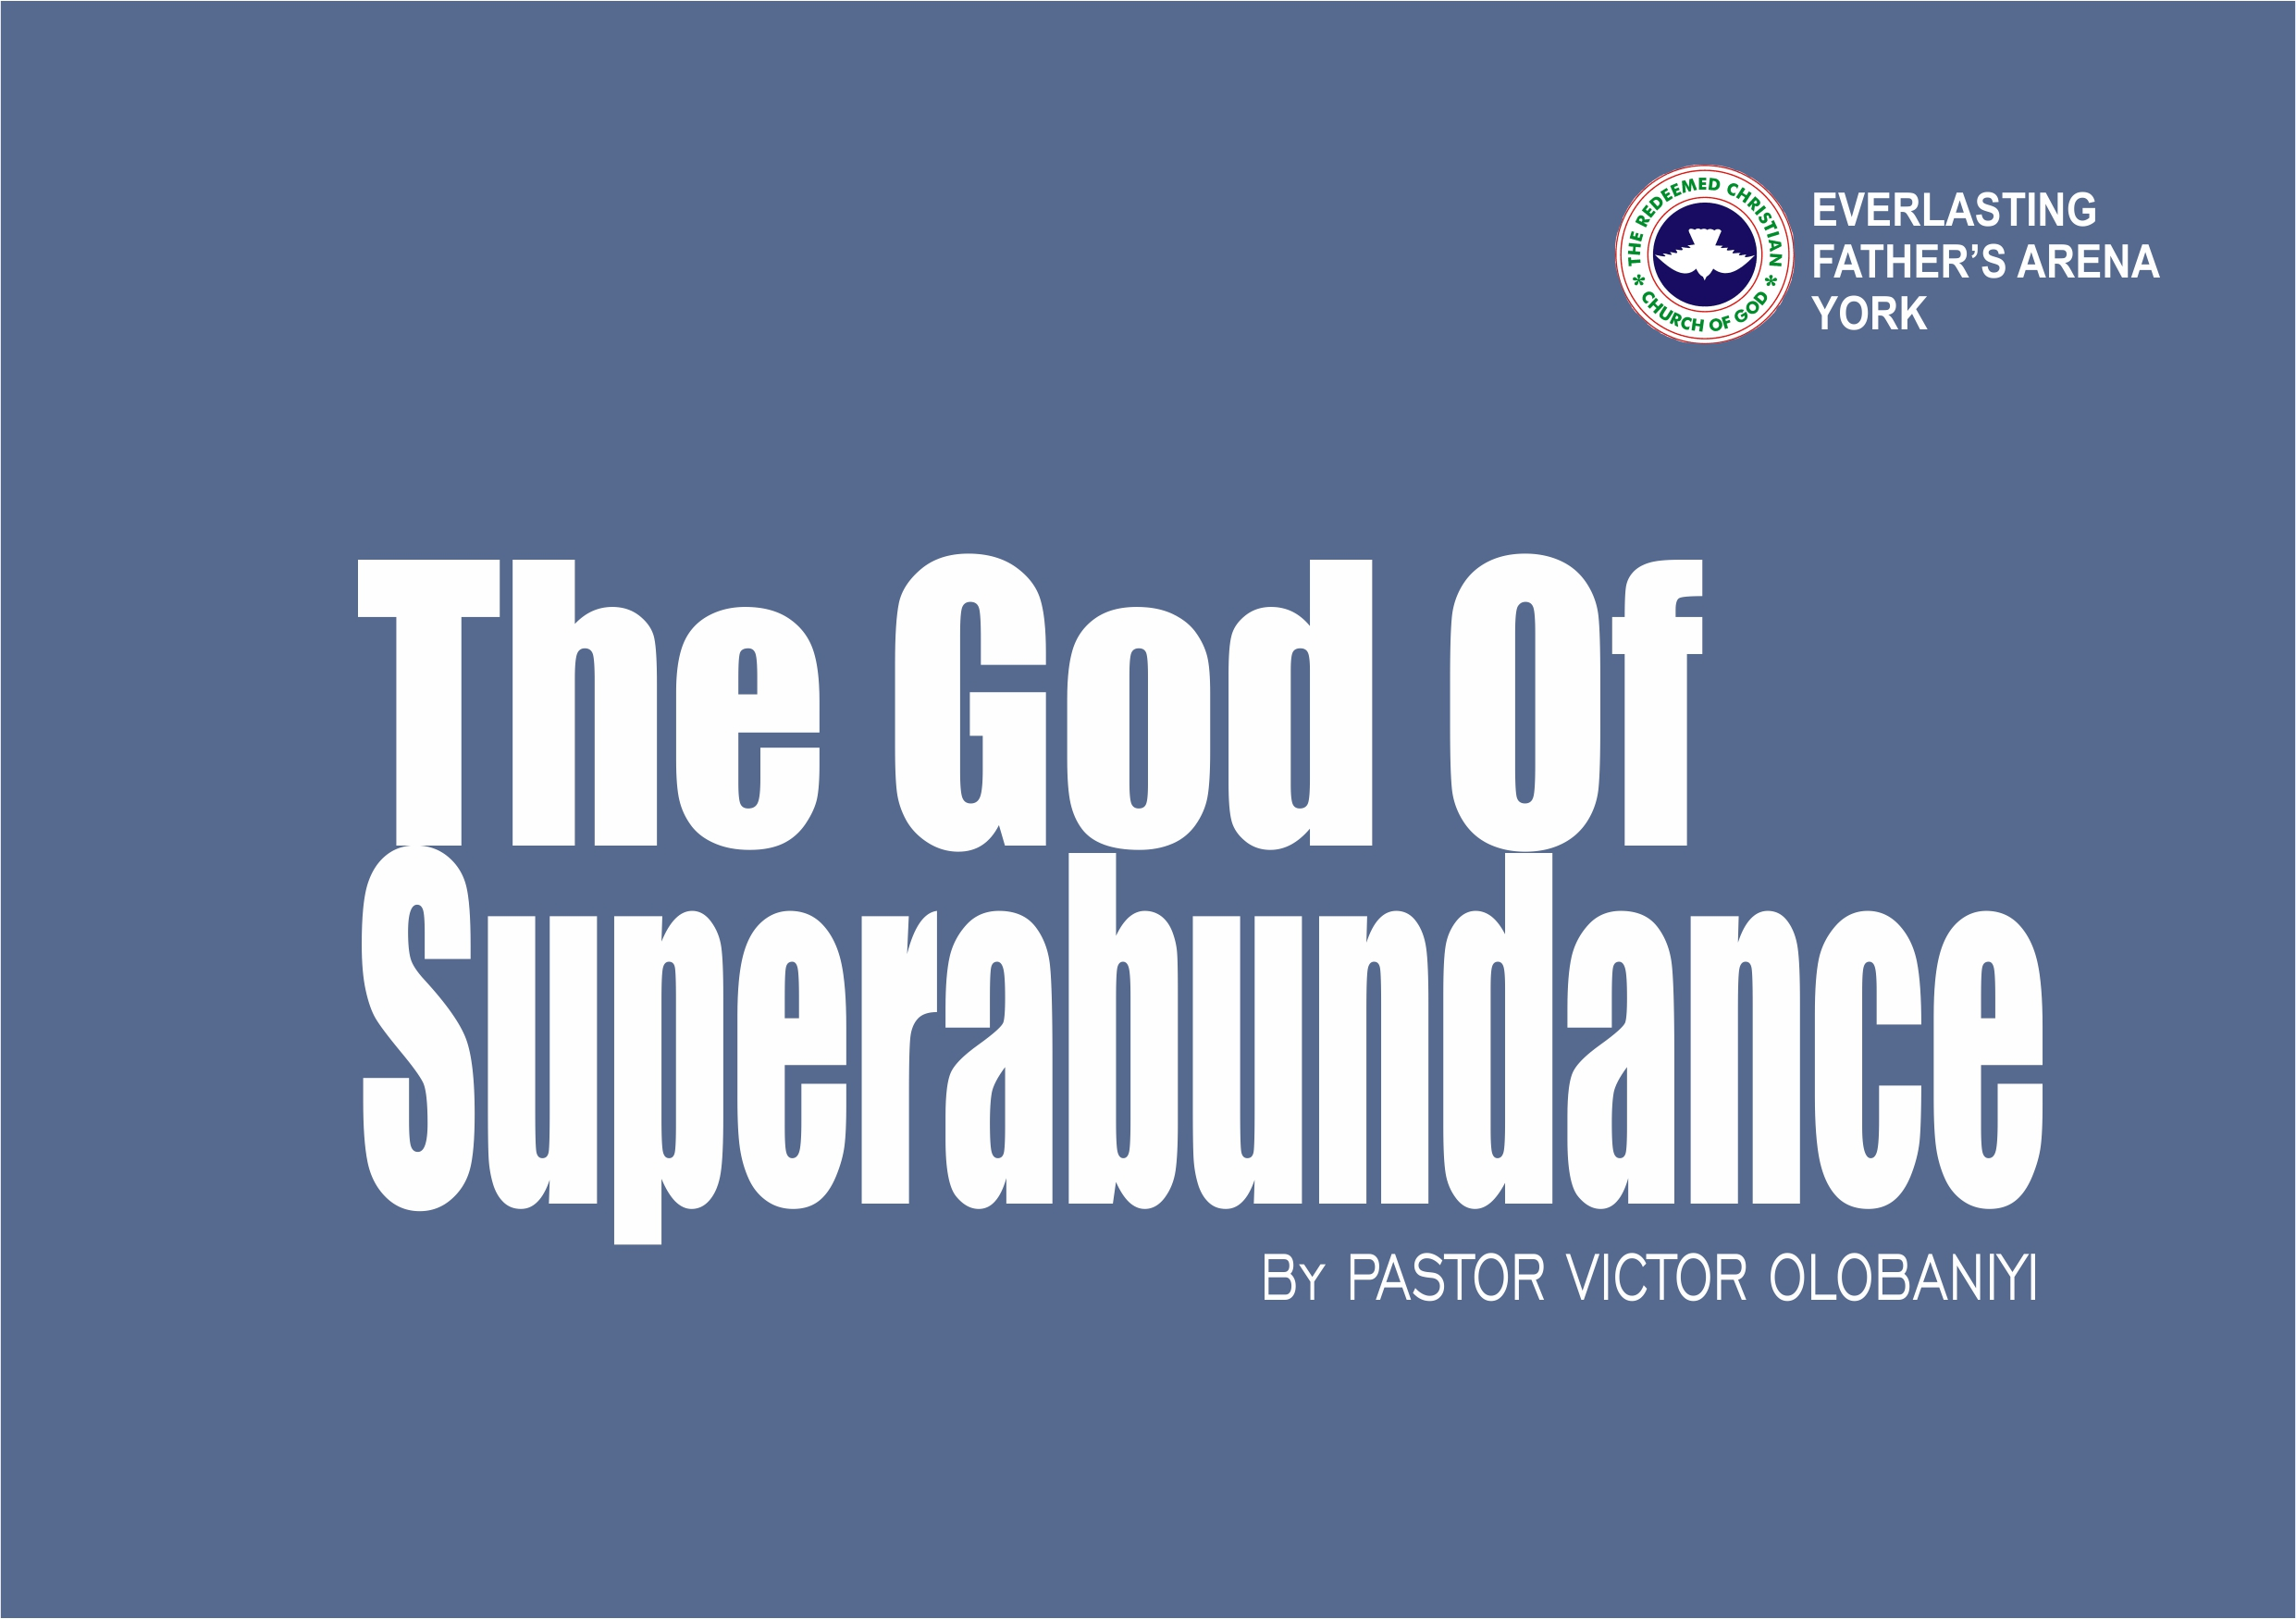 The God of Superabundance, by Pastor Victor Olobaniyi